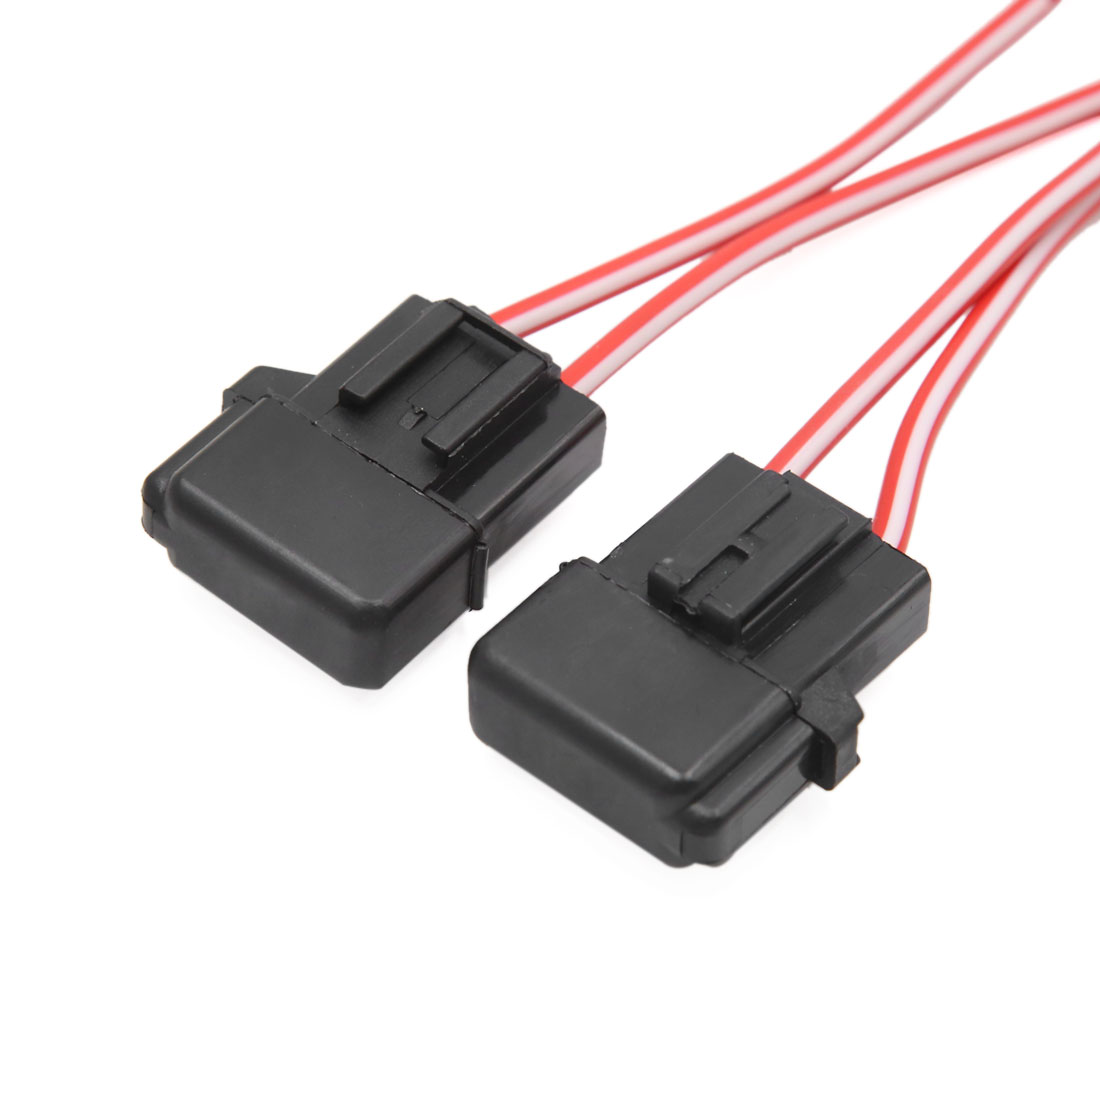 hight resolution of 2pcs black plastic square shell cap wiring harness fuse holder for car vehicle walmart canada